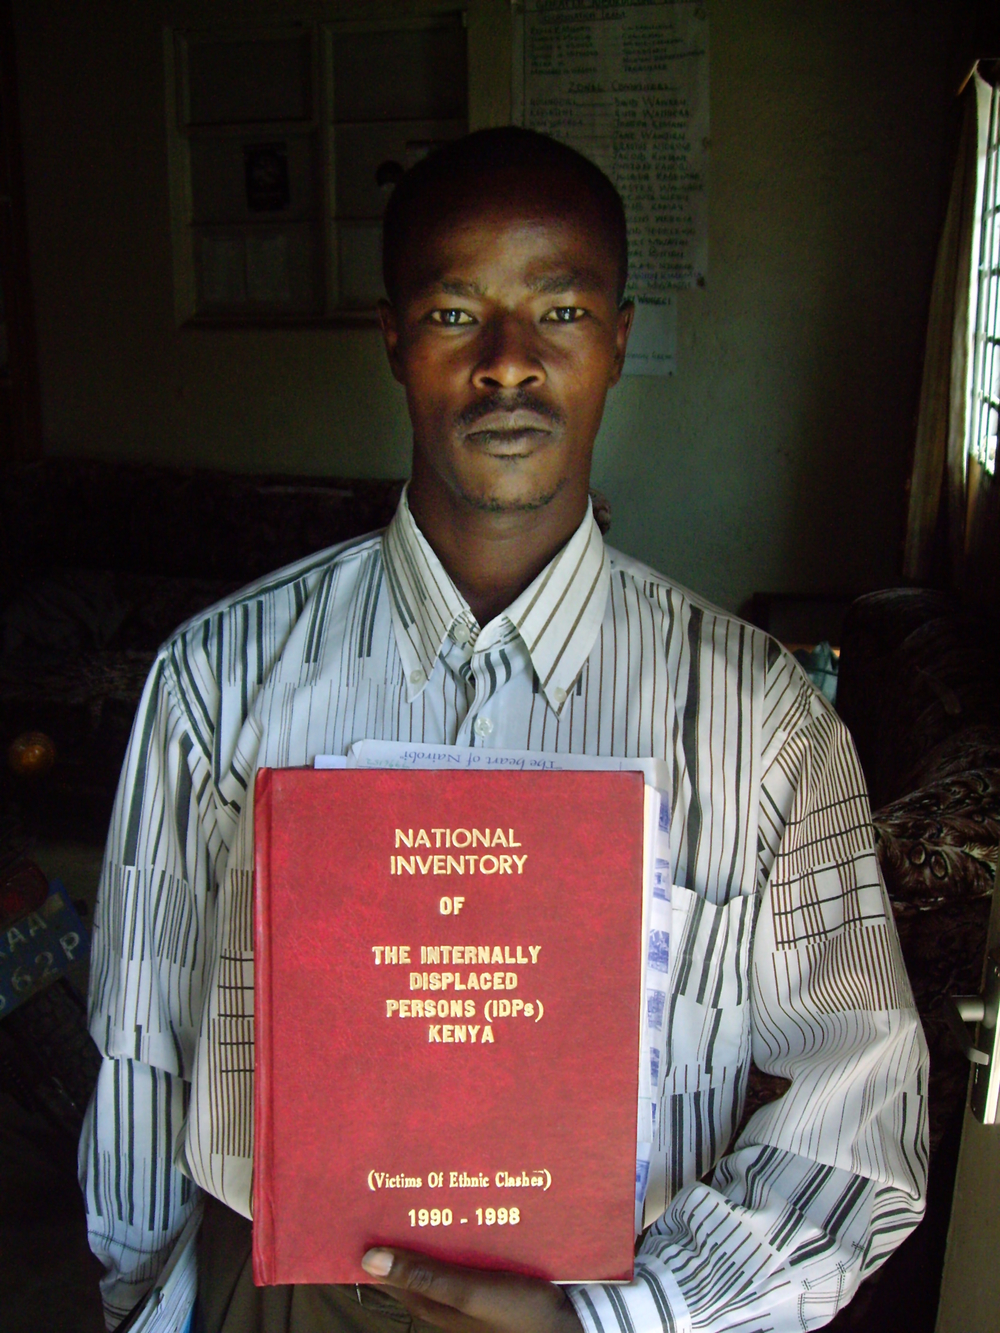 Keffah Magenyi, , National Coordinator of the IDP Network, holding the large National Inventory of IDPs in Kenya for 1990 to 1998 during the interview in Molo, Kenya, 9 July 2007.